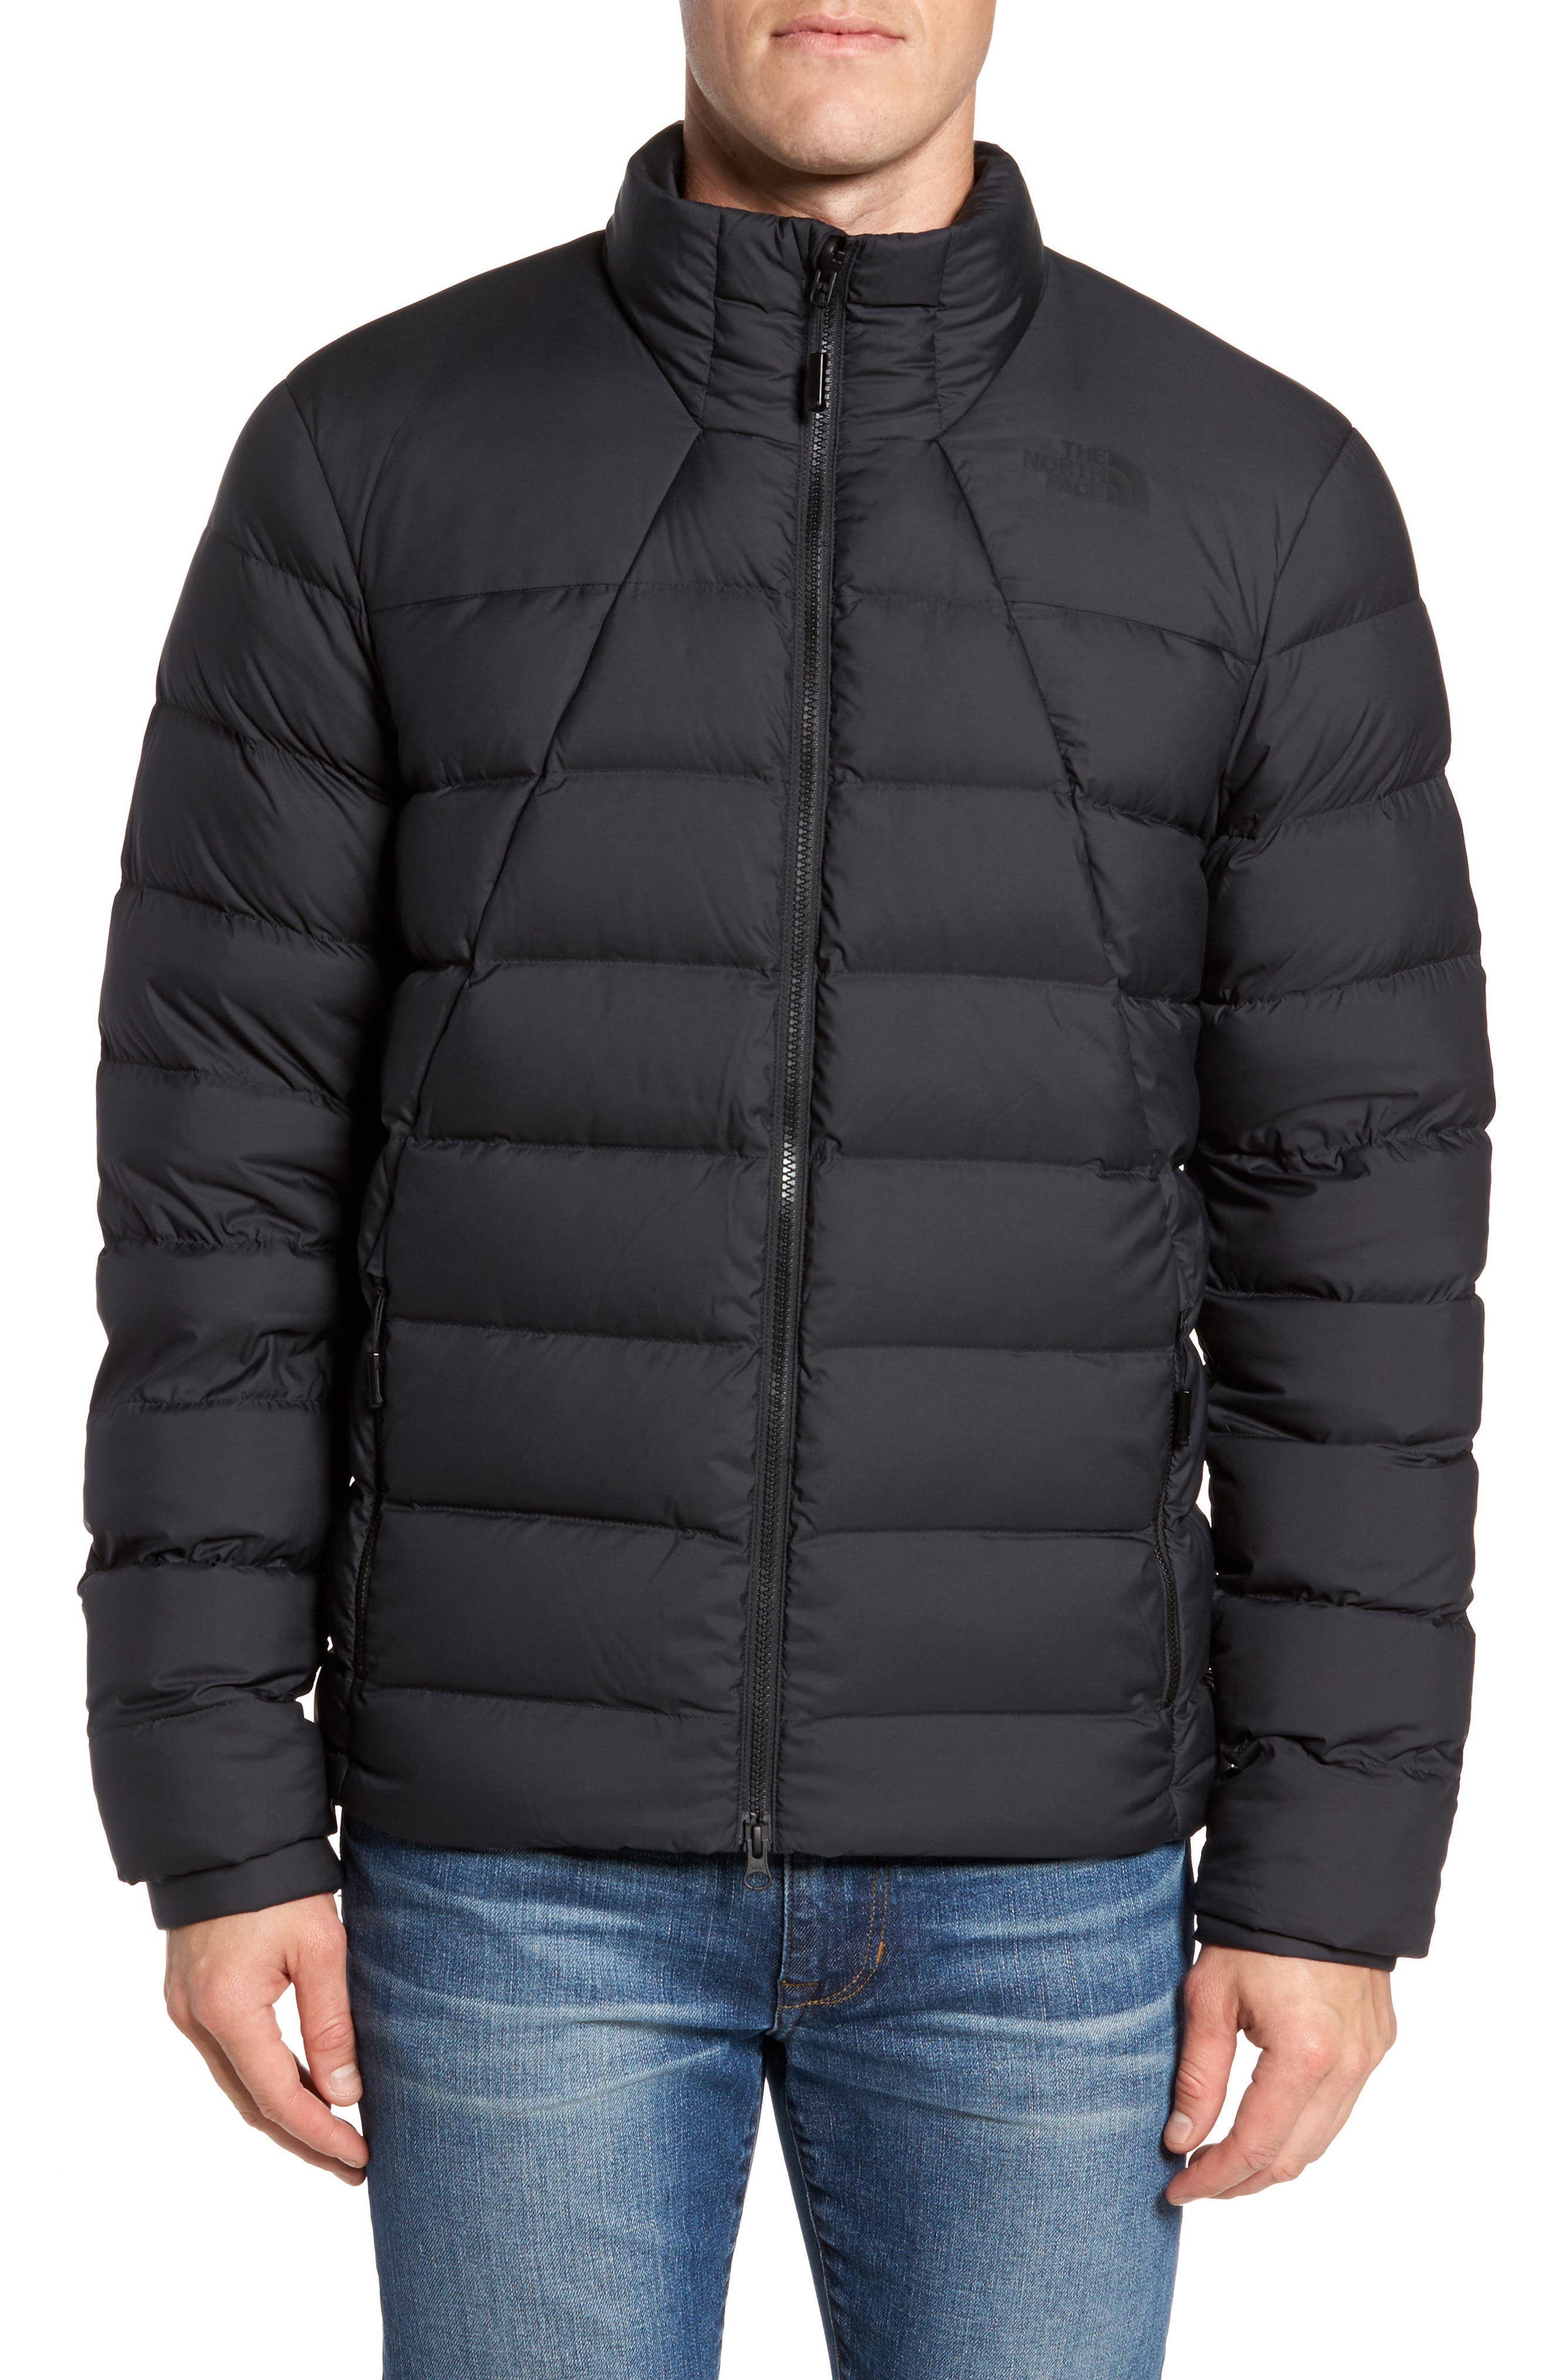 Cryos Gore-Tex<sup>®</sup> Tri-Climate 3-in-1 Jacket,                             Alternate thumbnail 4, color,                             TNF BLACK